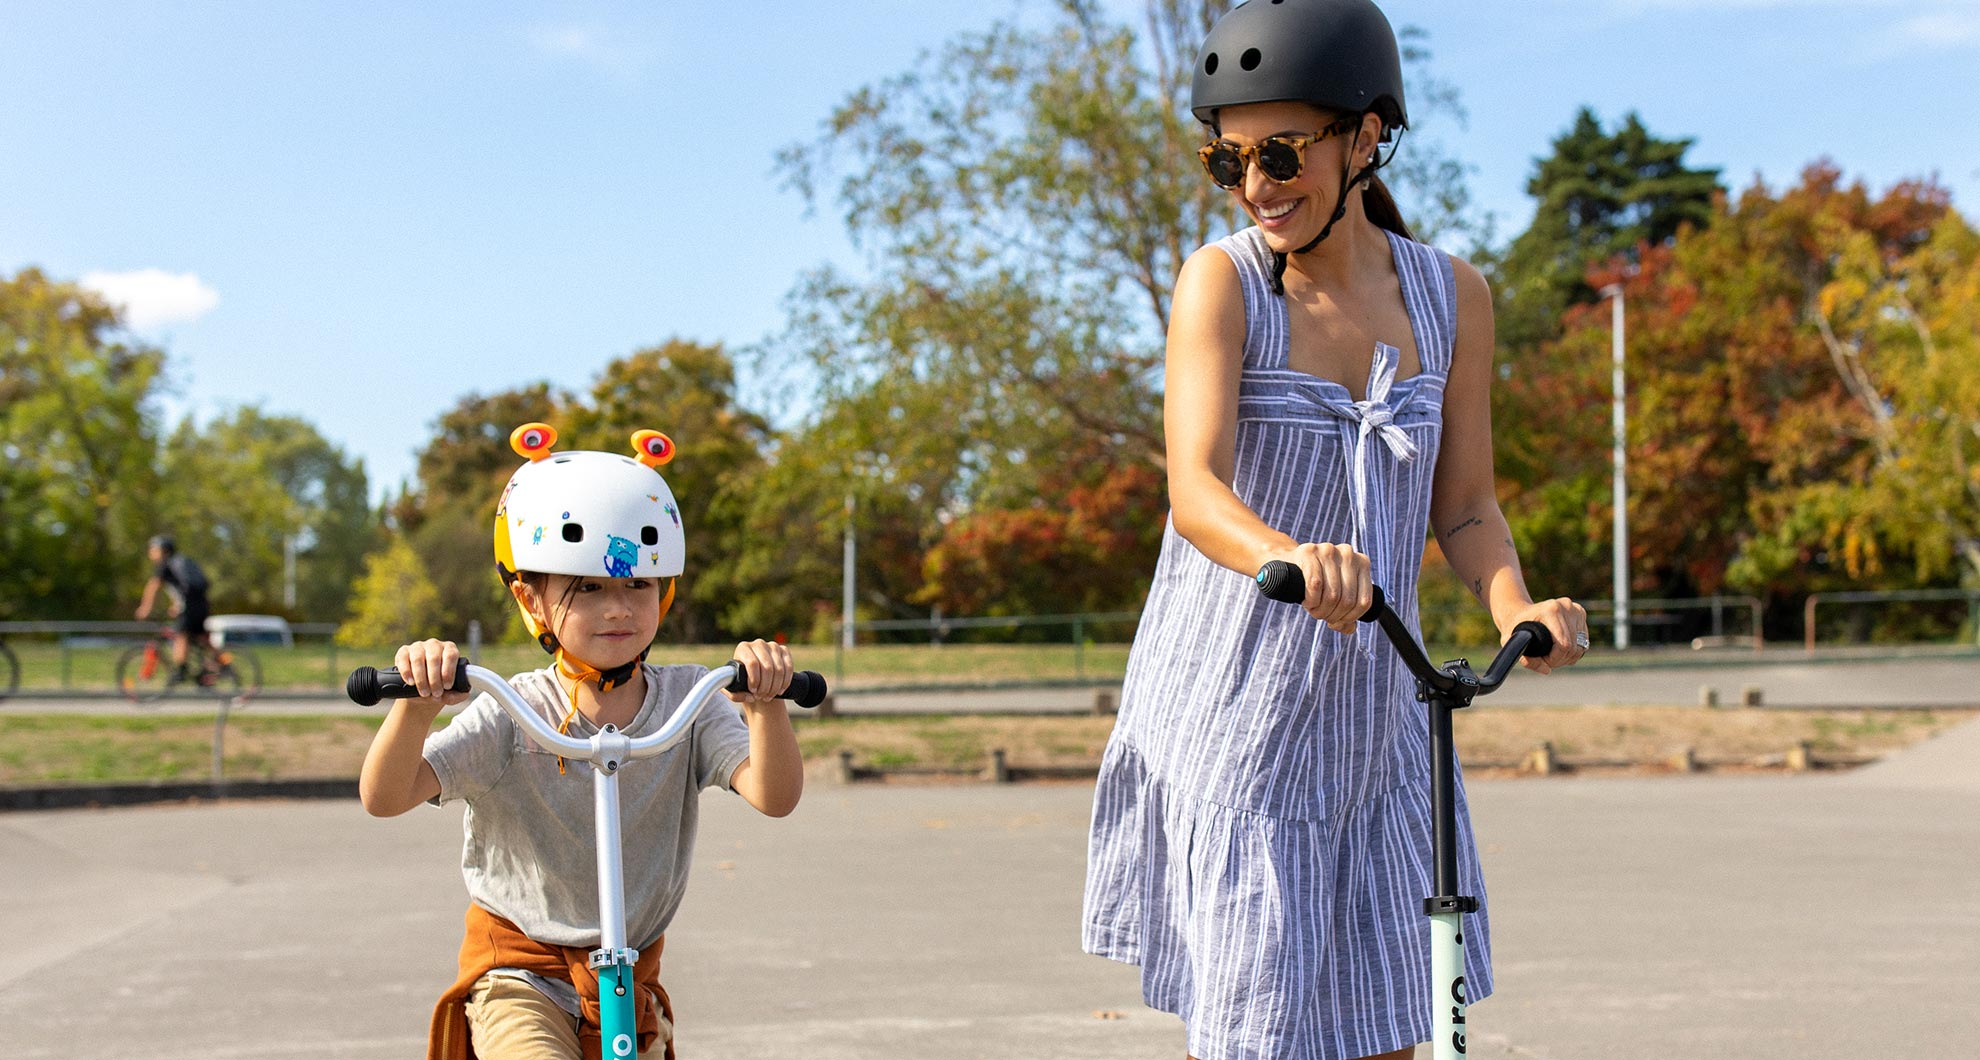 Mum and Child riding safety on their Micro Scooters